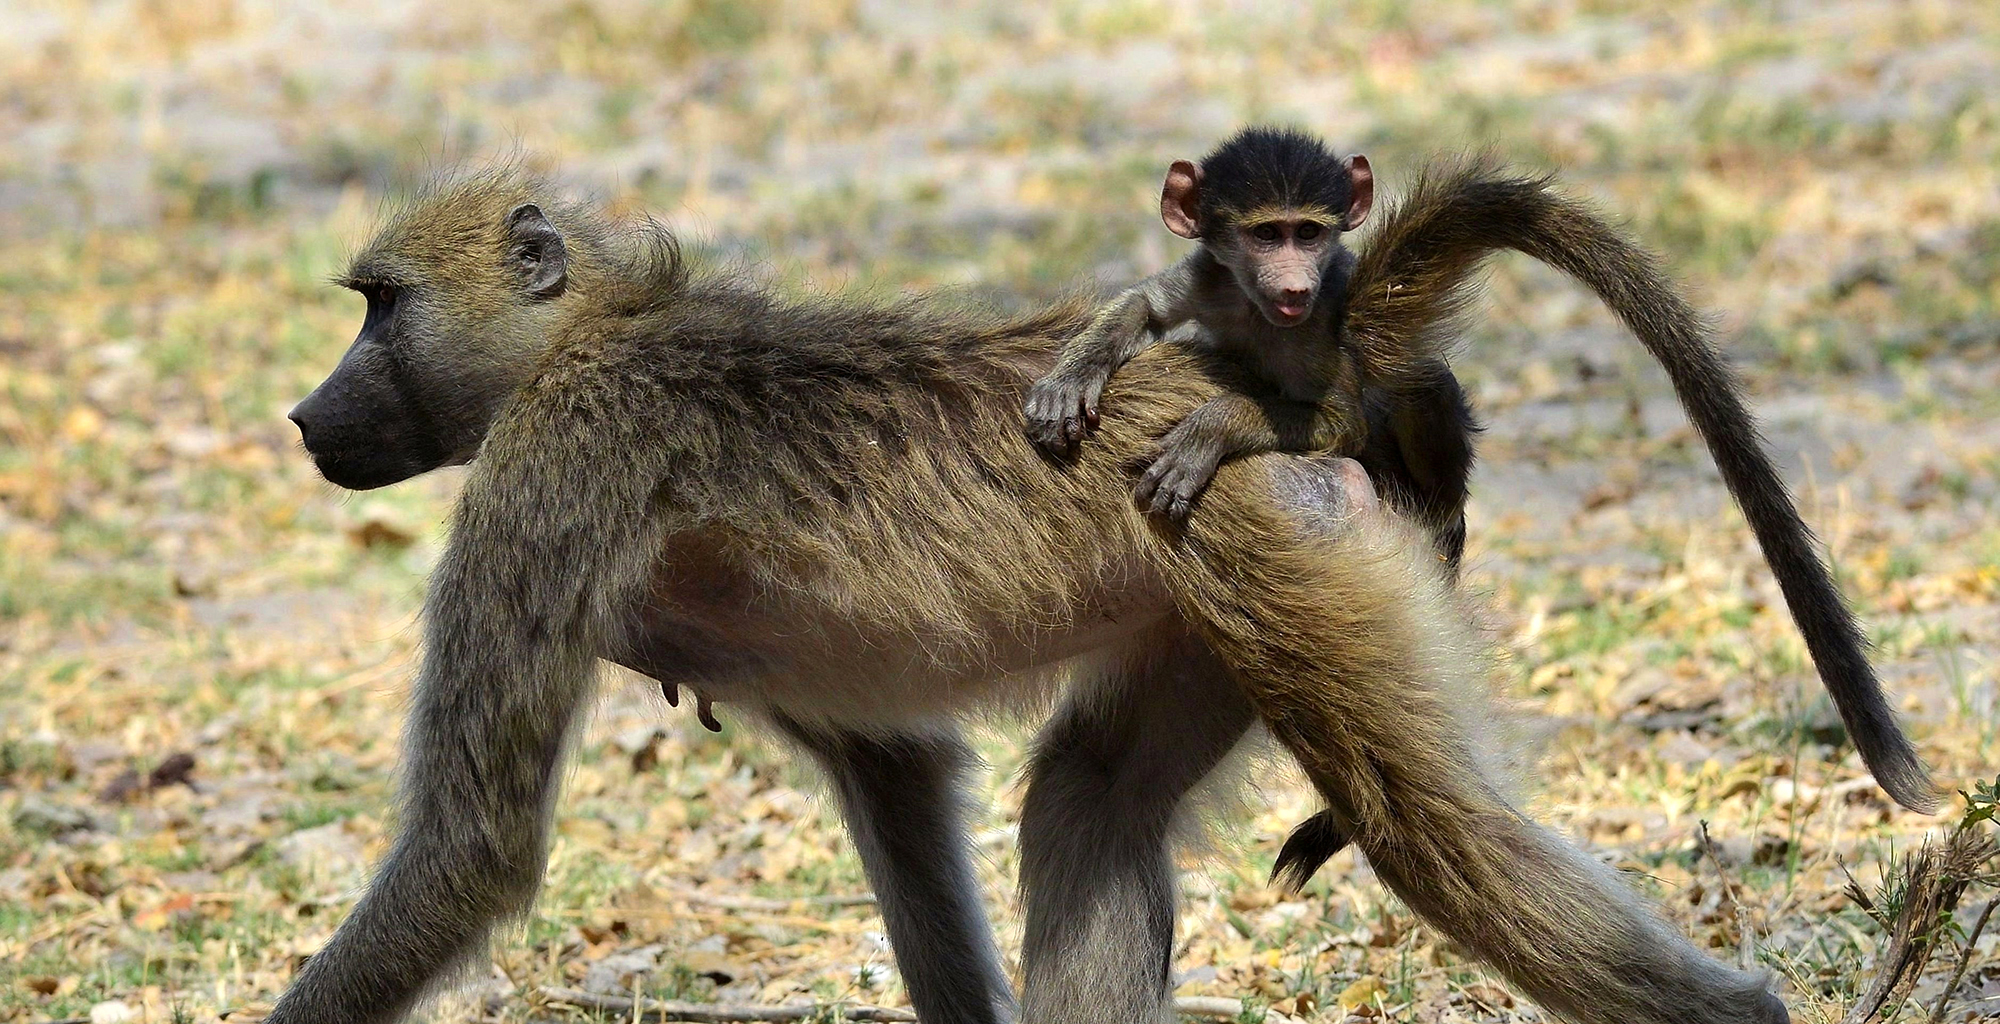 Botswana-Kwando-Wildlife-Monkey